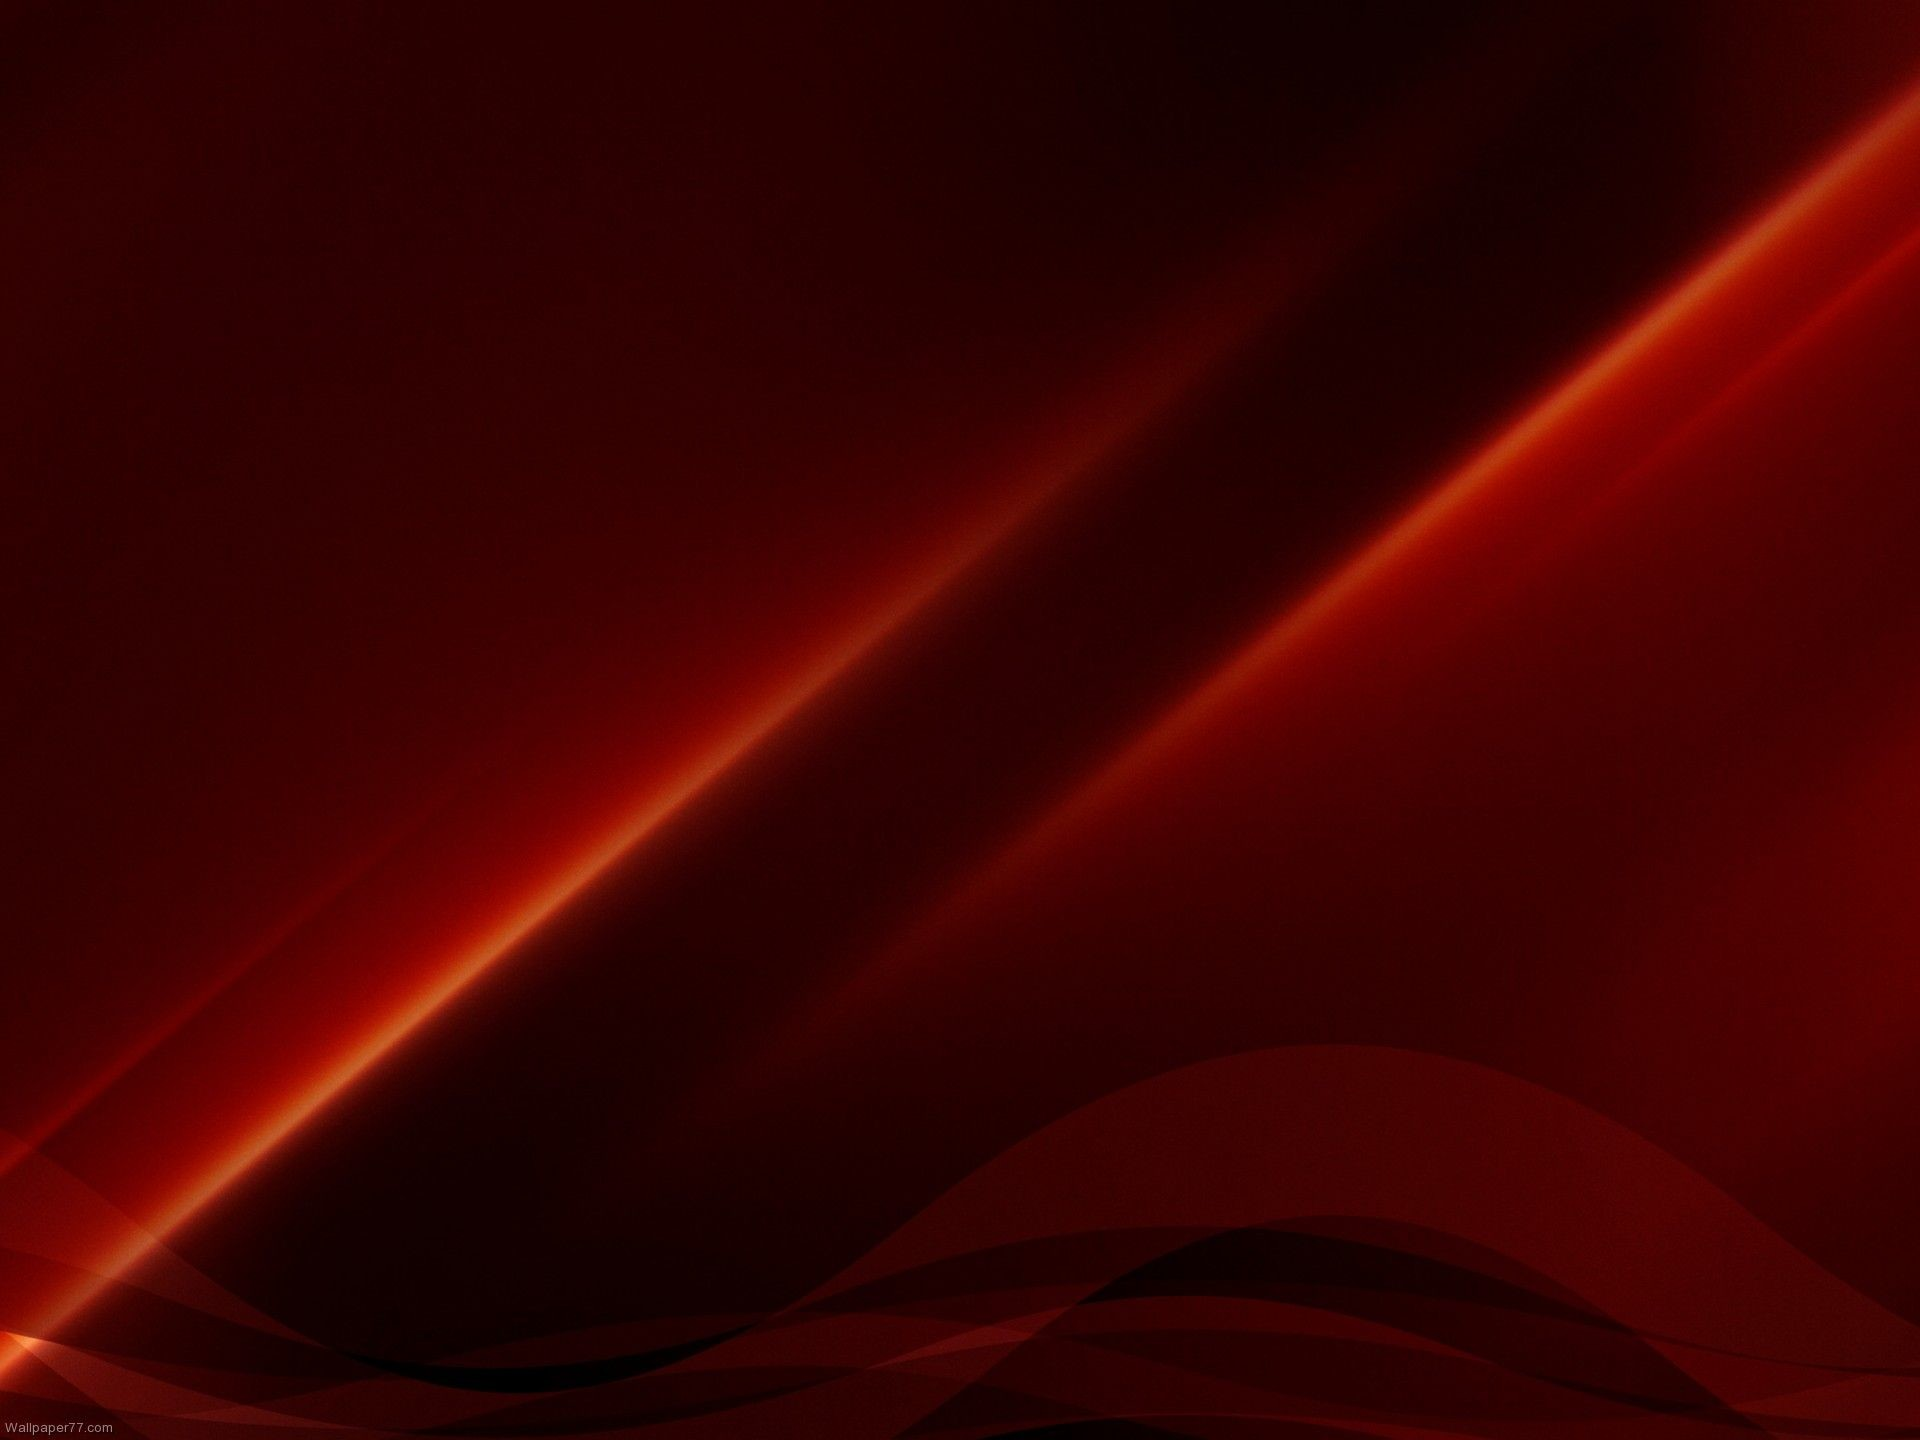 1920x1440 download wallpaper net color background dark maroon abstract background 1920x1440 wallpaper teahub io teahub io